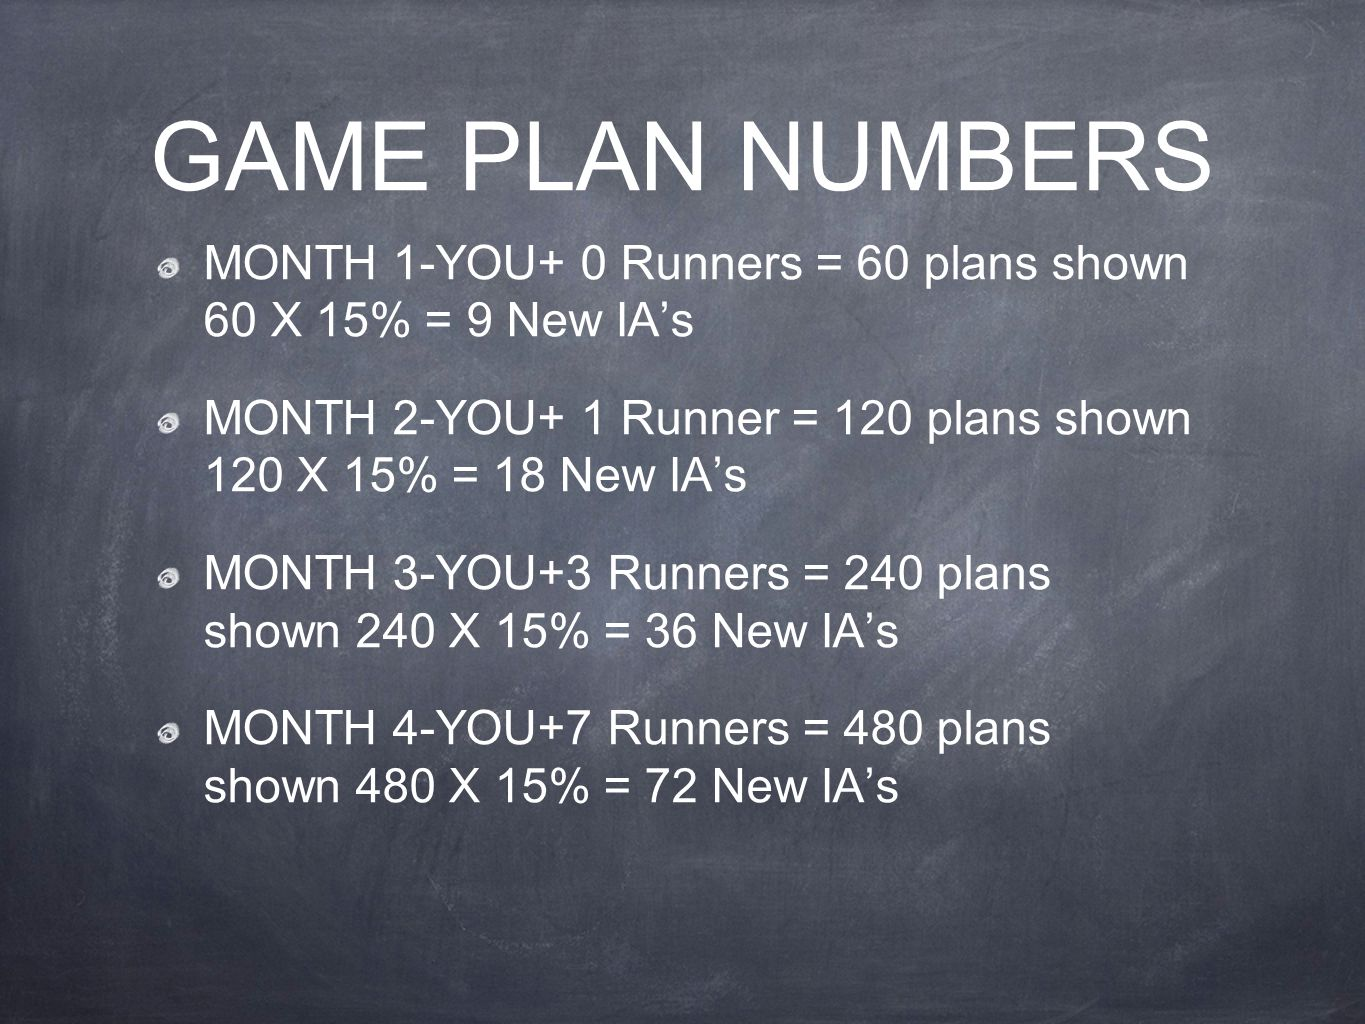 GAME PLAN NUMBERS MONTH 1-YOU+ 0 Runners = 60 plans shown 60 X 15% = 9 New IA's MONTH 2-YOU+ 1 Runner = 120 plans shown 120 X 15% = 18 New IA's MONTH 3-YOU+3 Runners = 240 plans shown 240 X 15% = 36 New IA's MONTH 4-YOU+7 Runners = 480 plans shown 480 X 15% = 72 New IA's